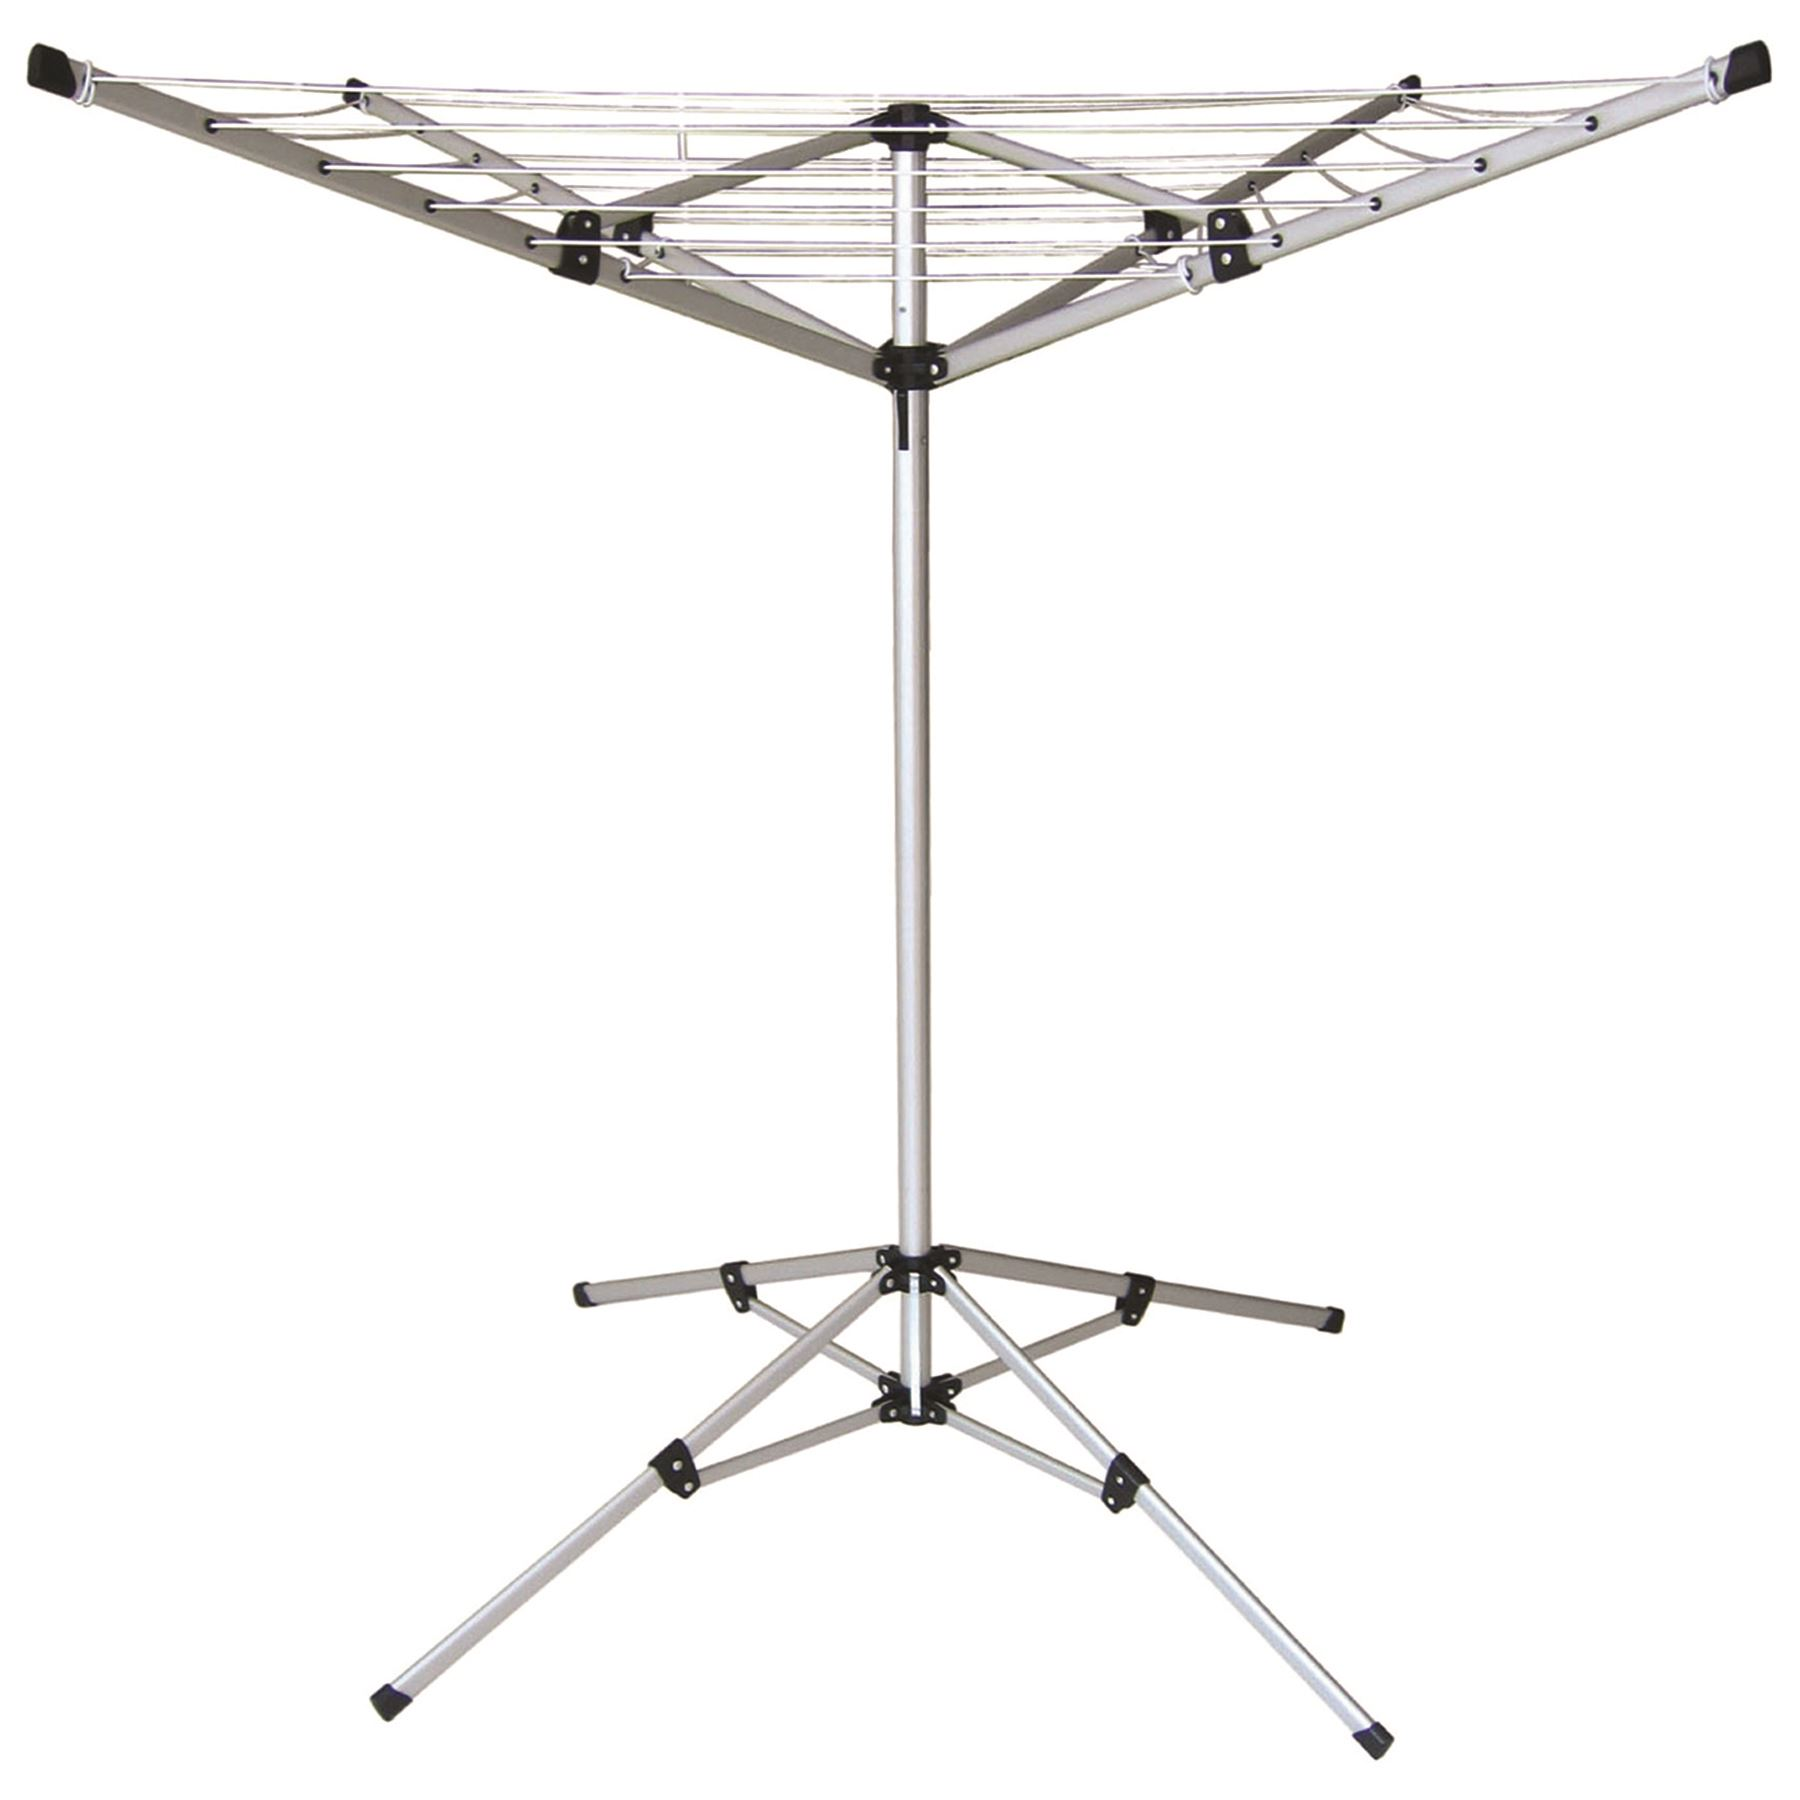 4 arm portable aluminium rotary airer clothes line camping. Black Bedroom Furniture Sets. Home Design Ideas